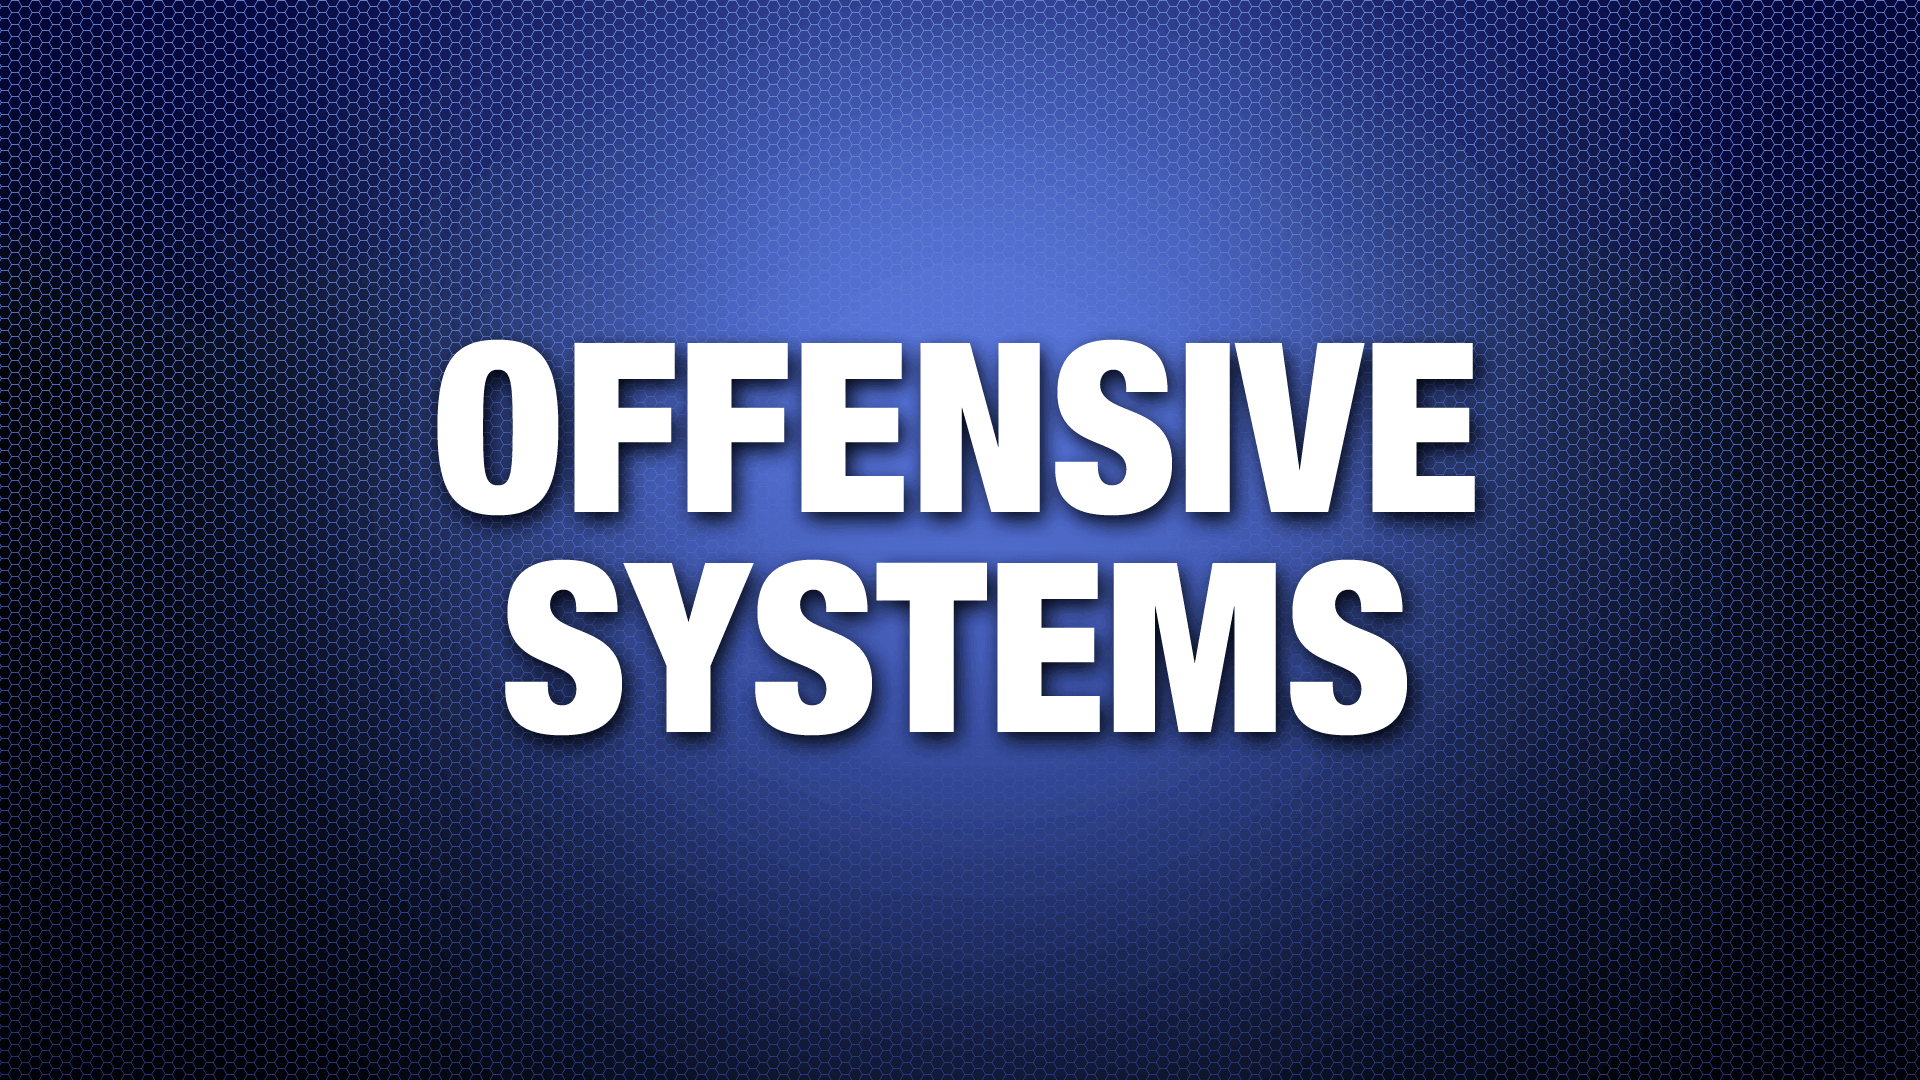 OffensiveSystems